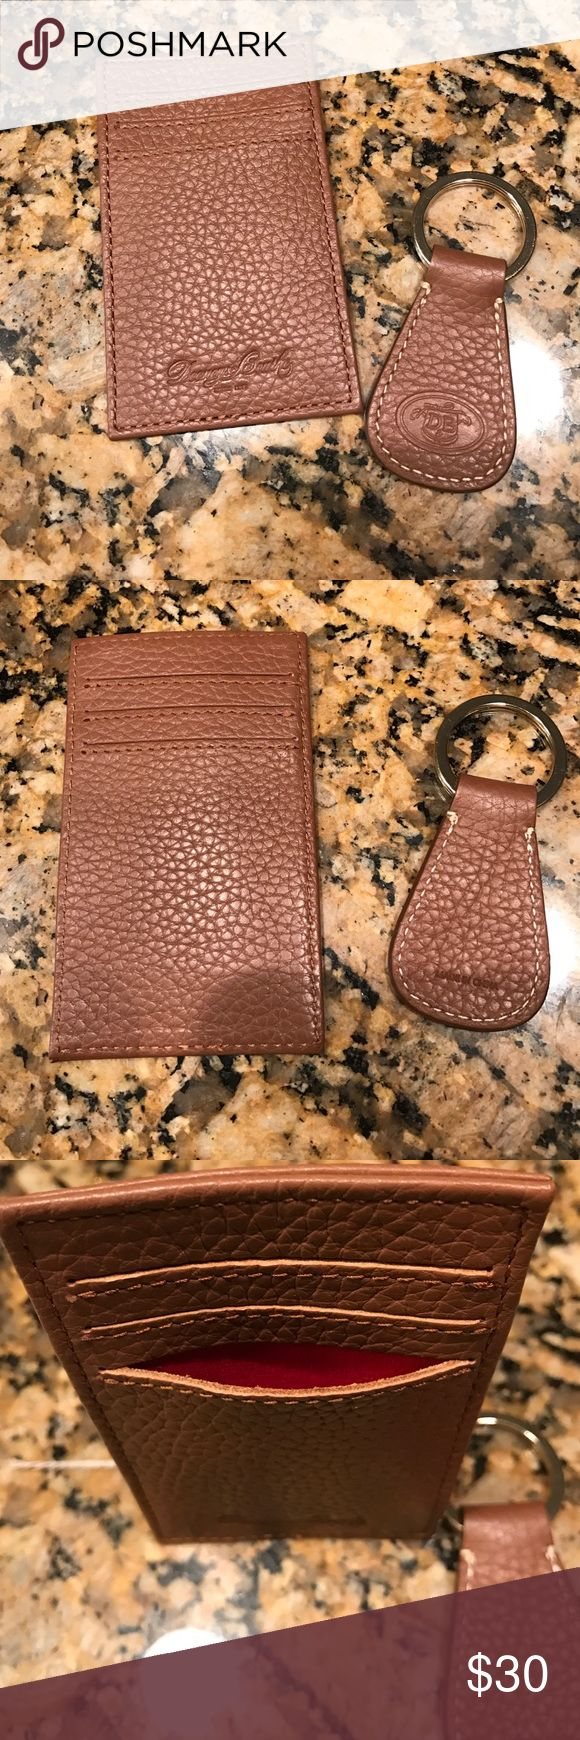 Dooney & Bourke key chain and card holder Brown never used D & B keychain and card holder. 3 slots on each side of mini wallet with red interior. LOWEST Dooney & Bourke Accessories Key & Card Holders